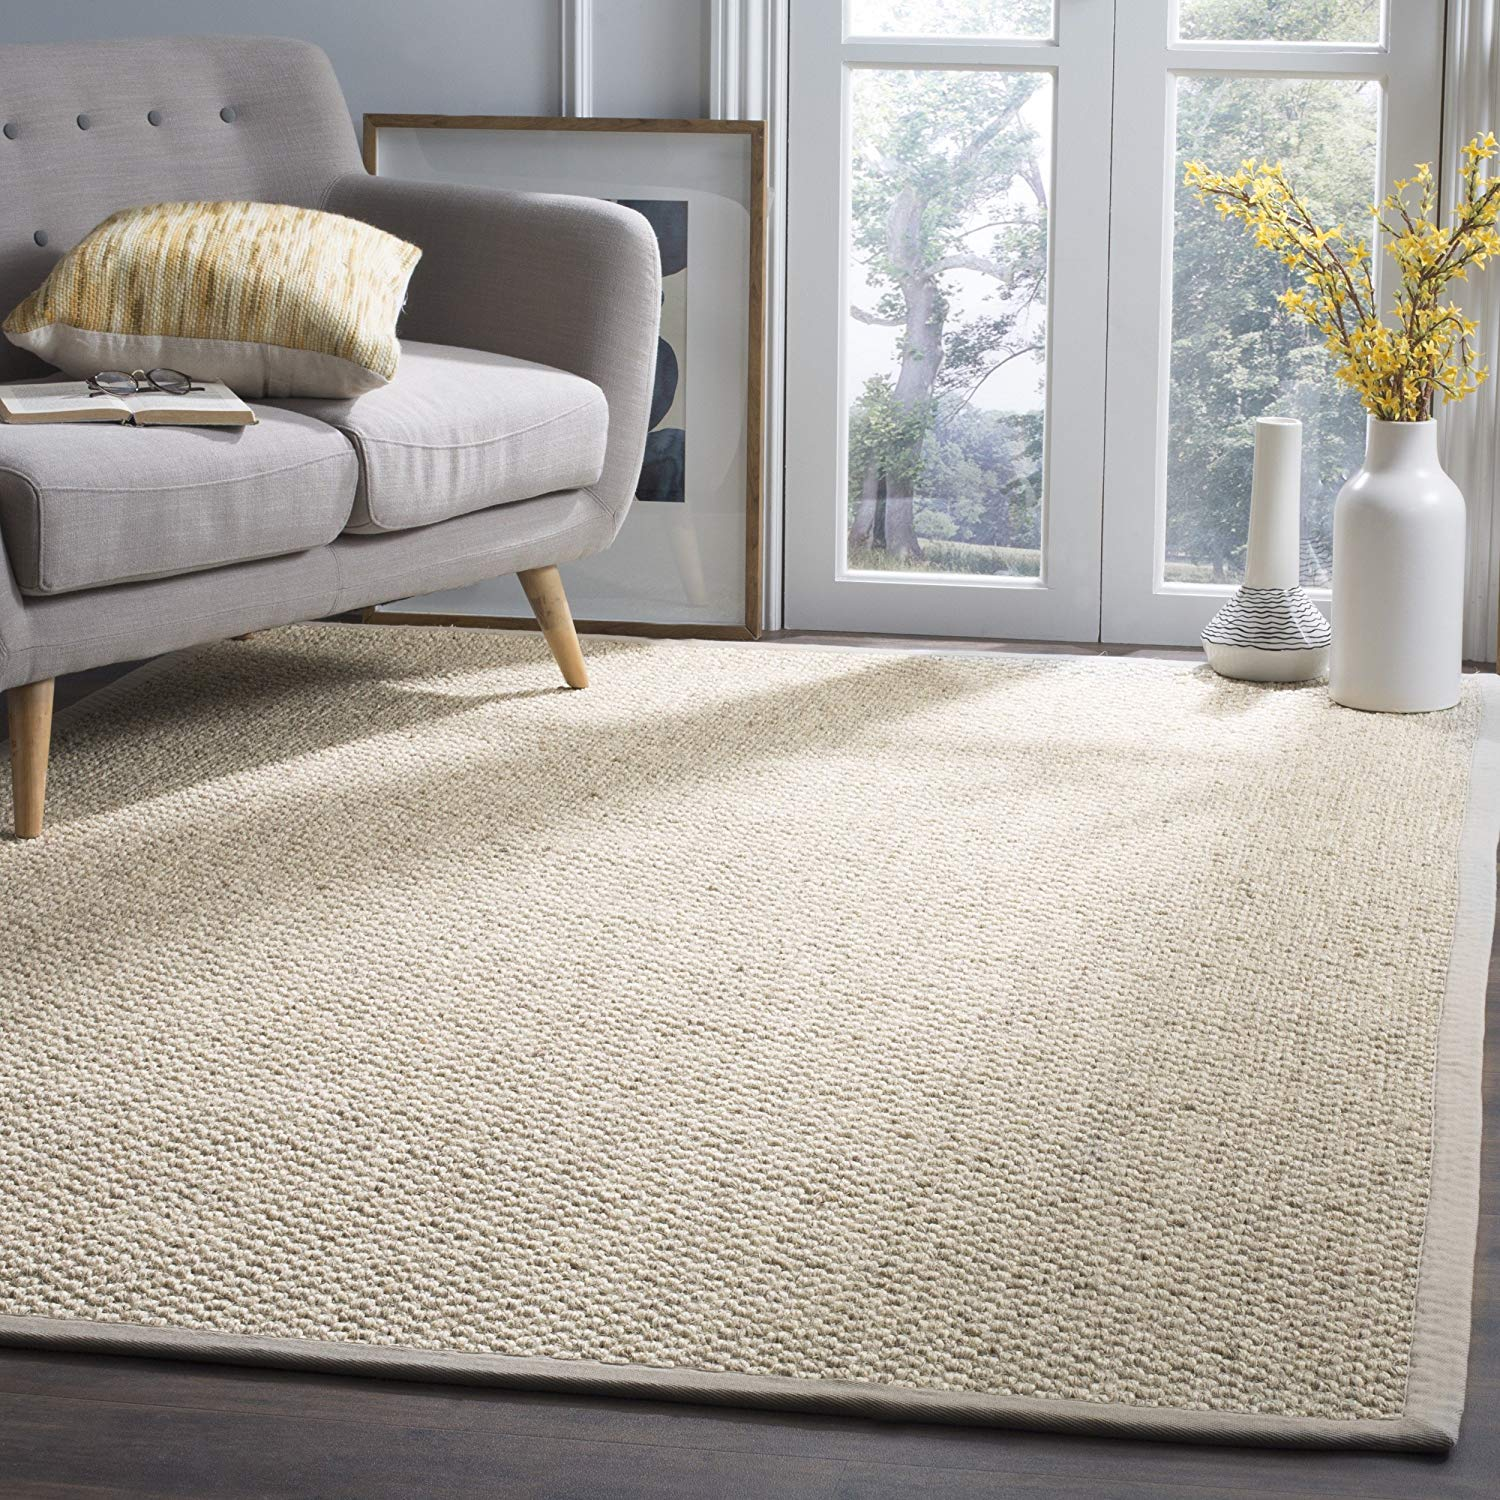 /vieh_Natural_Fiber_Collection_NF525C_Marble_Sisal_Area_Rug_4_x_6.jpg You Only Need 9 Accessories For A Cozy Home Decor